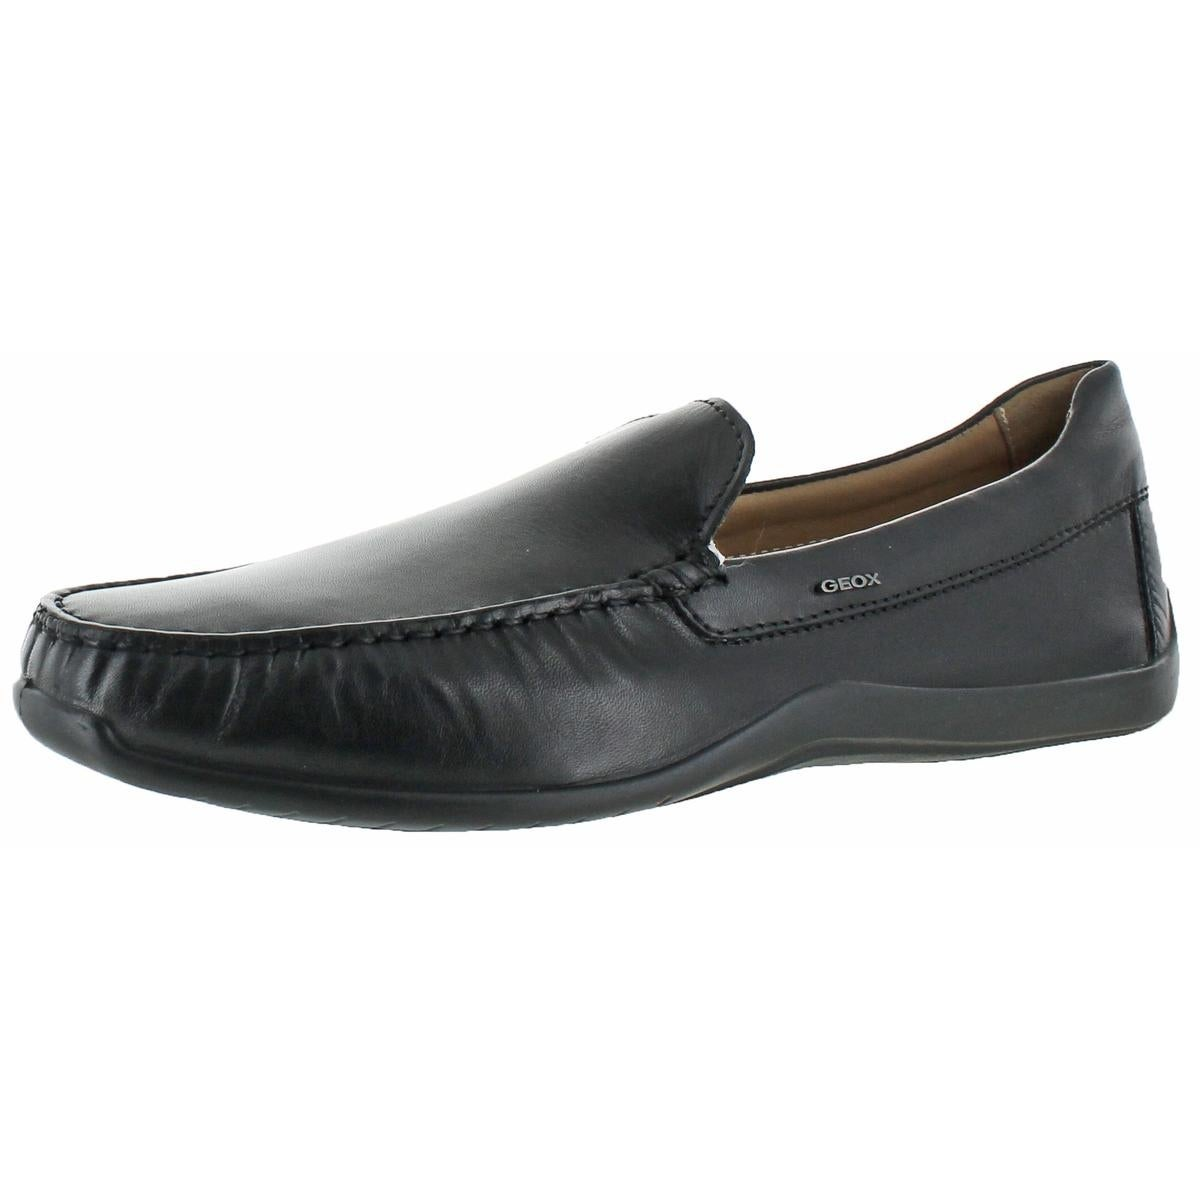 Geox Respira Mens Xense Driving Moccasins Leather Loafer